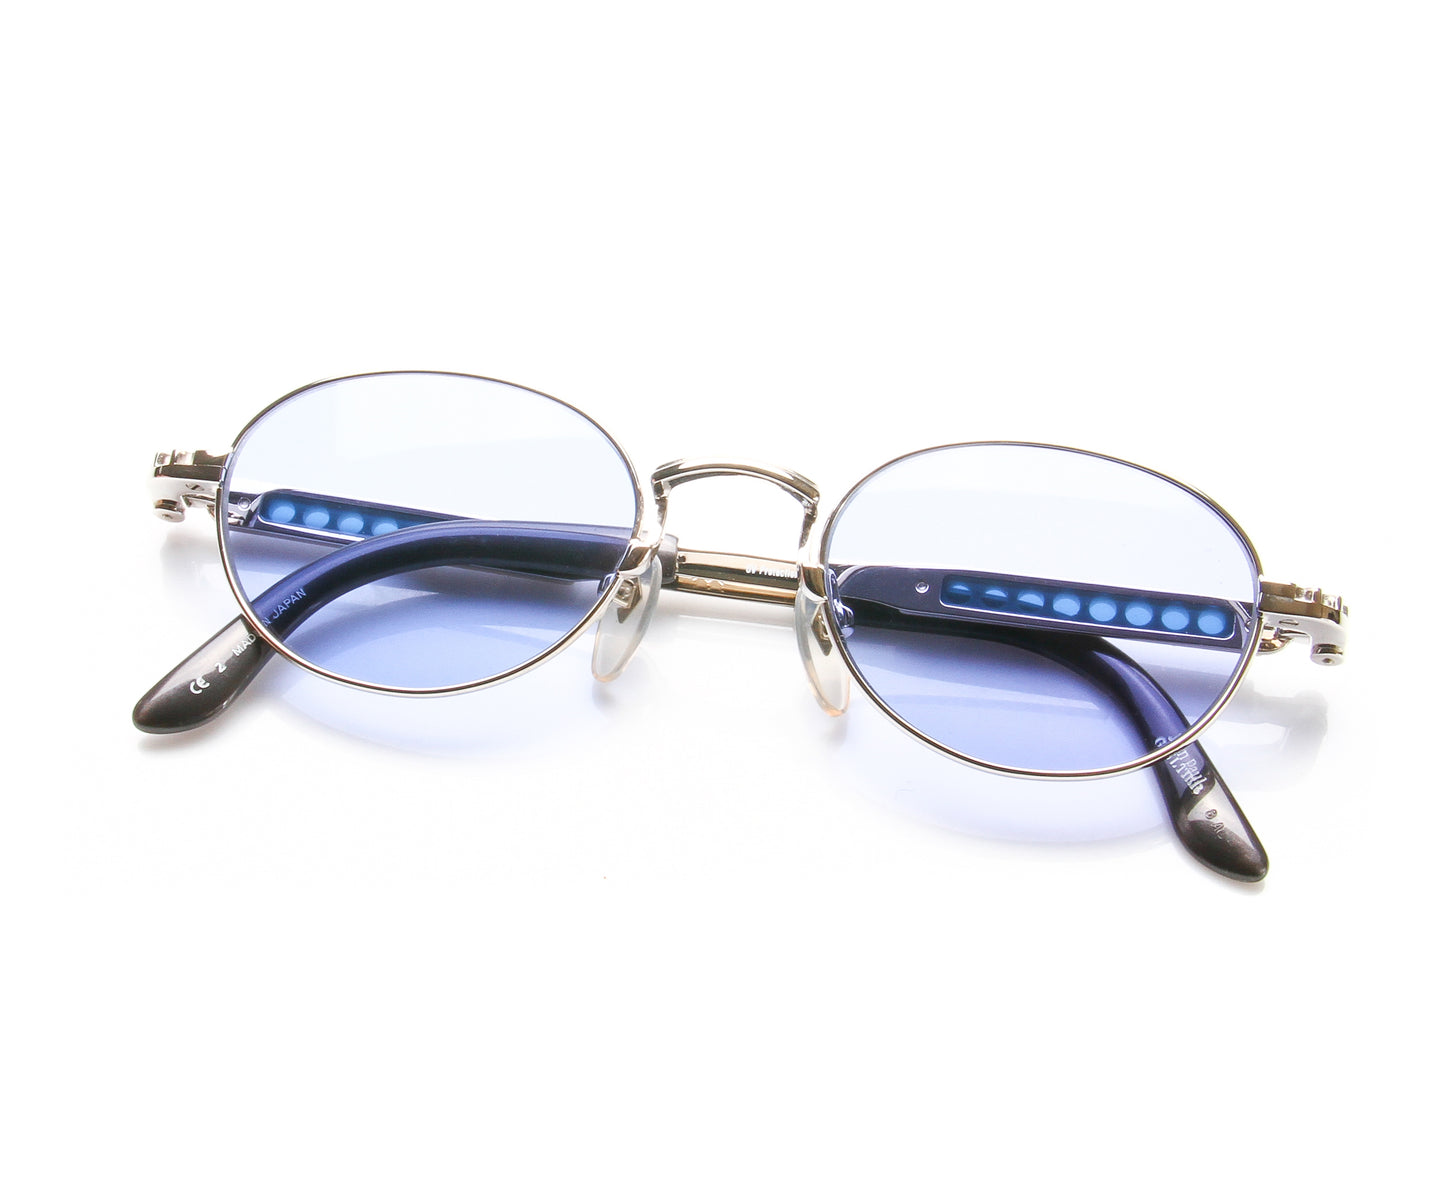 Jean Paul Gaultier 56 8104 2, Jean Paul Gaultier , glasses frames, eyeglasses online, eyeglass frames, mens glasses, womens glasses, buy glasses online, designer eyeglasses, vintage sunglasses, retro sunglasses, vintage glasses, sunglass, eyeglass, glasses, lens, vintage frames company, vf